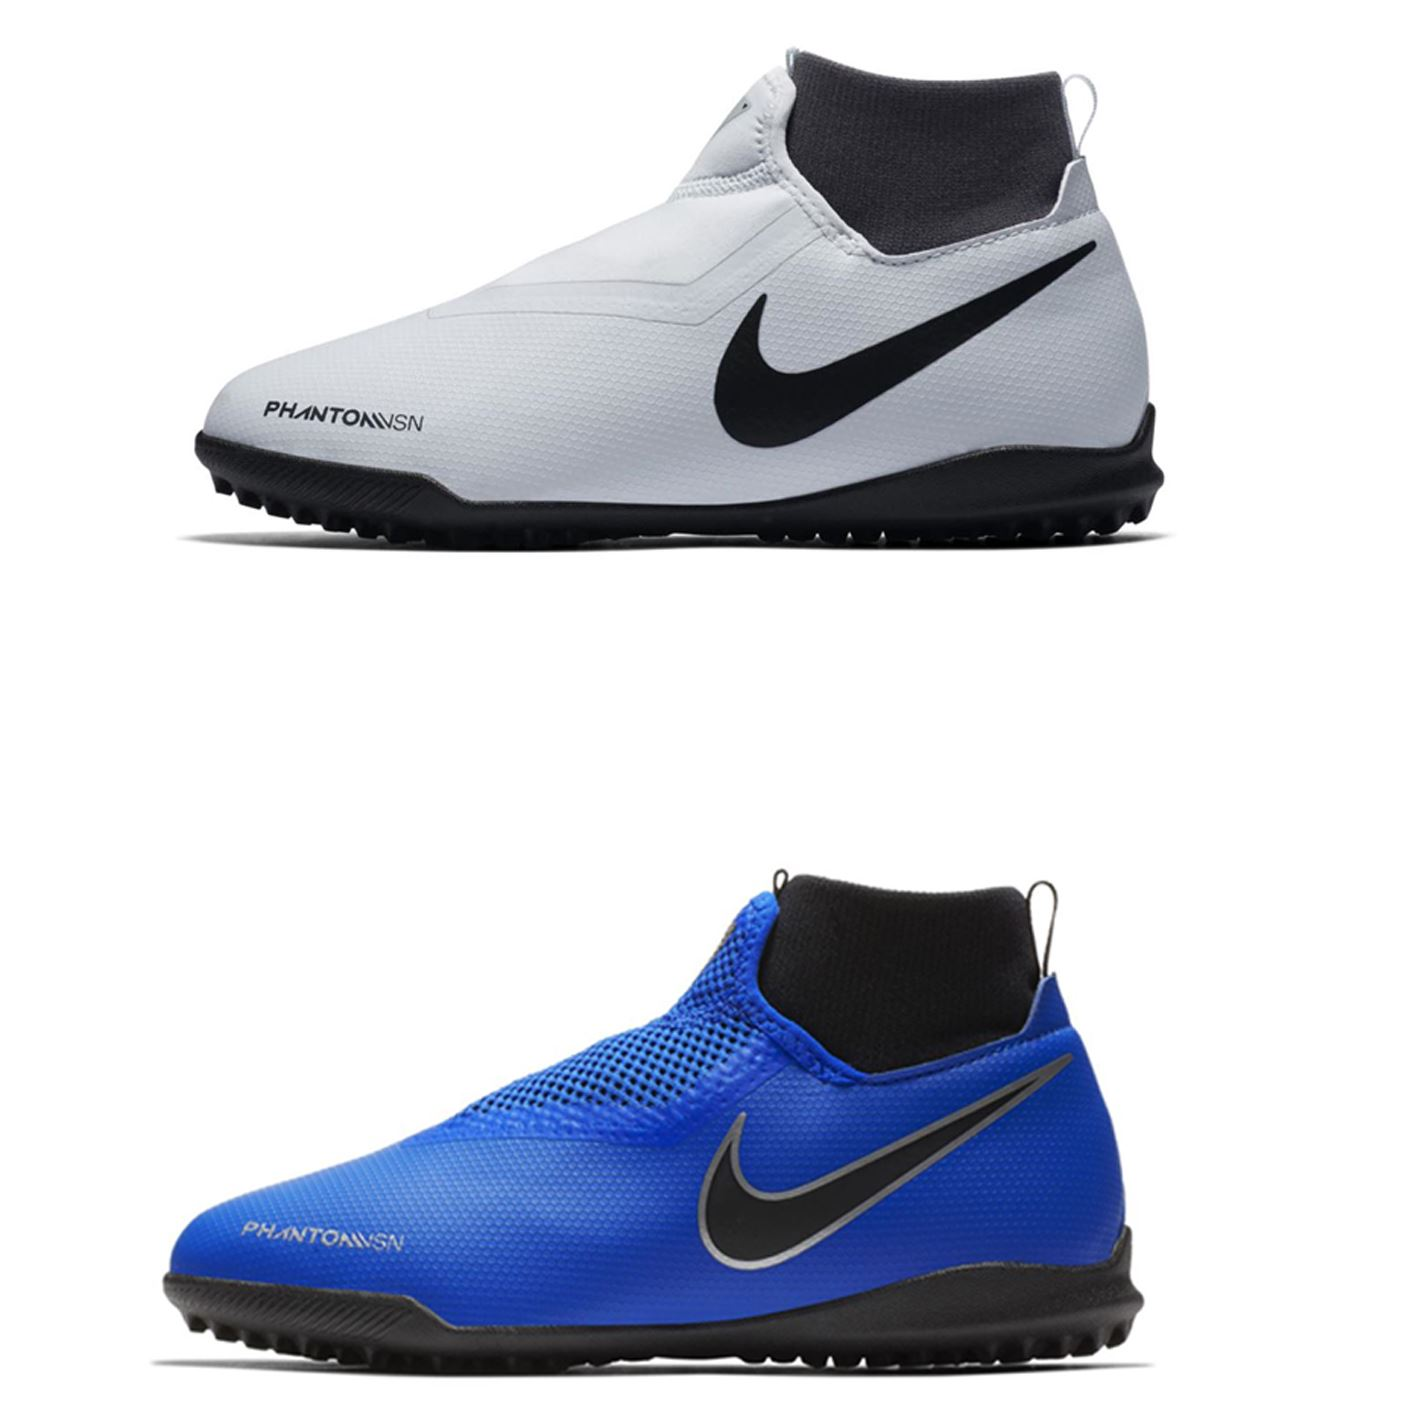 8f7593b11 Details about Nike Phantom Vision Academy DF Astro Turf Football Trainers  Juniors Soccer Shoes